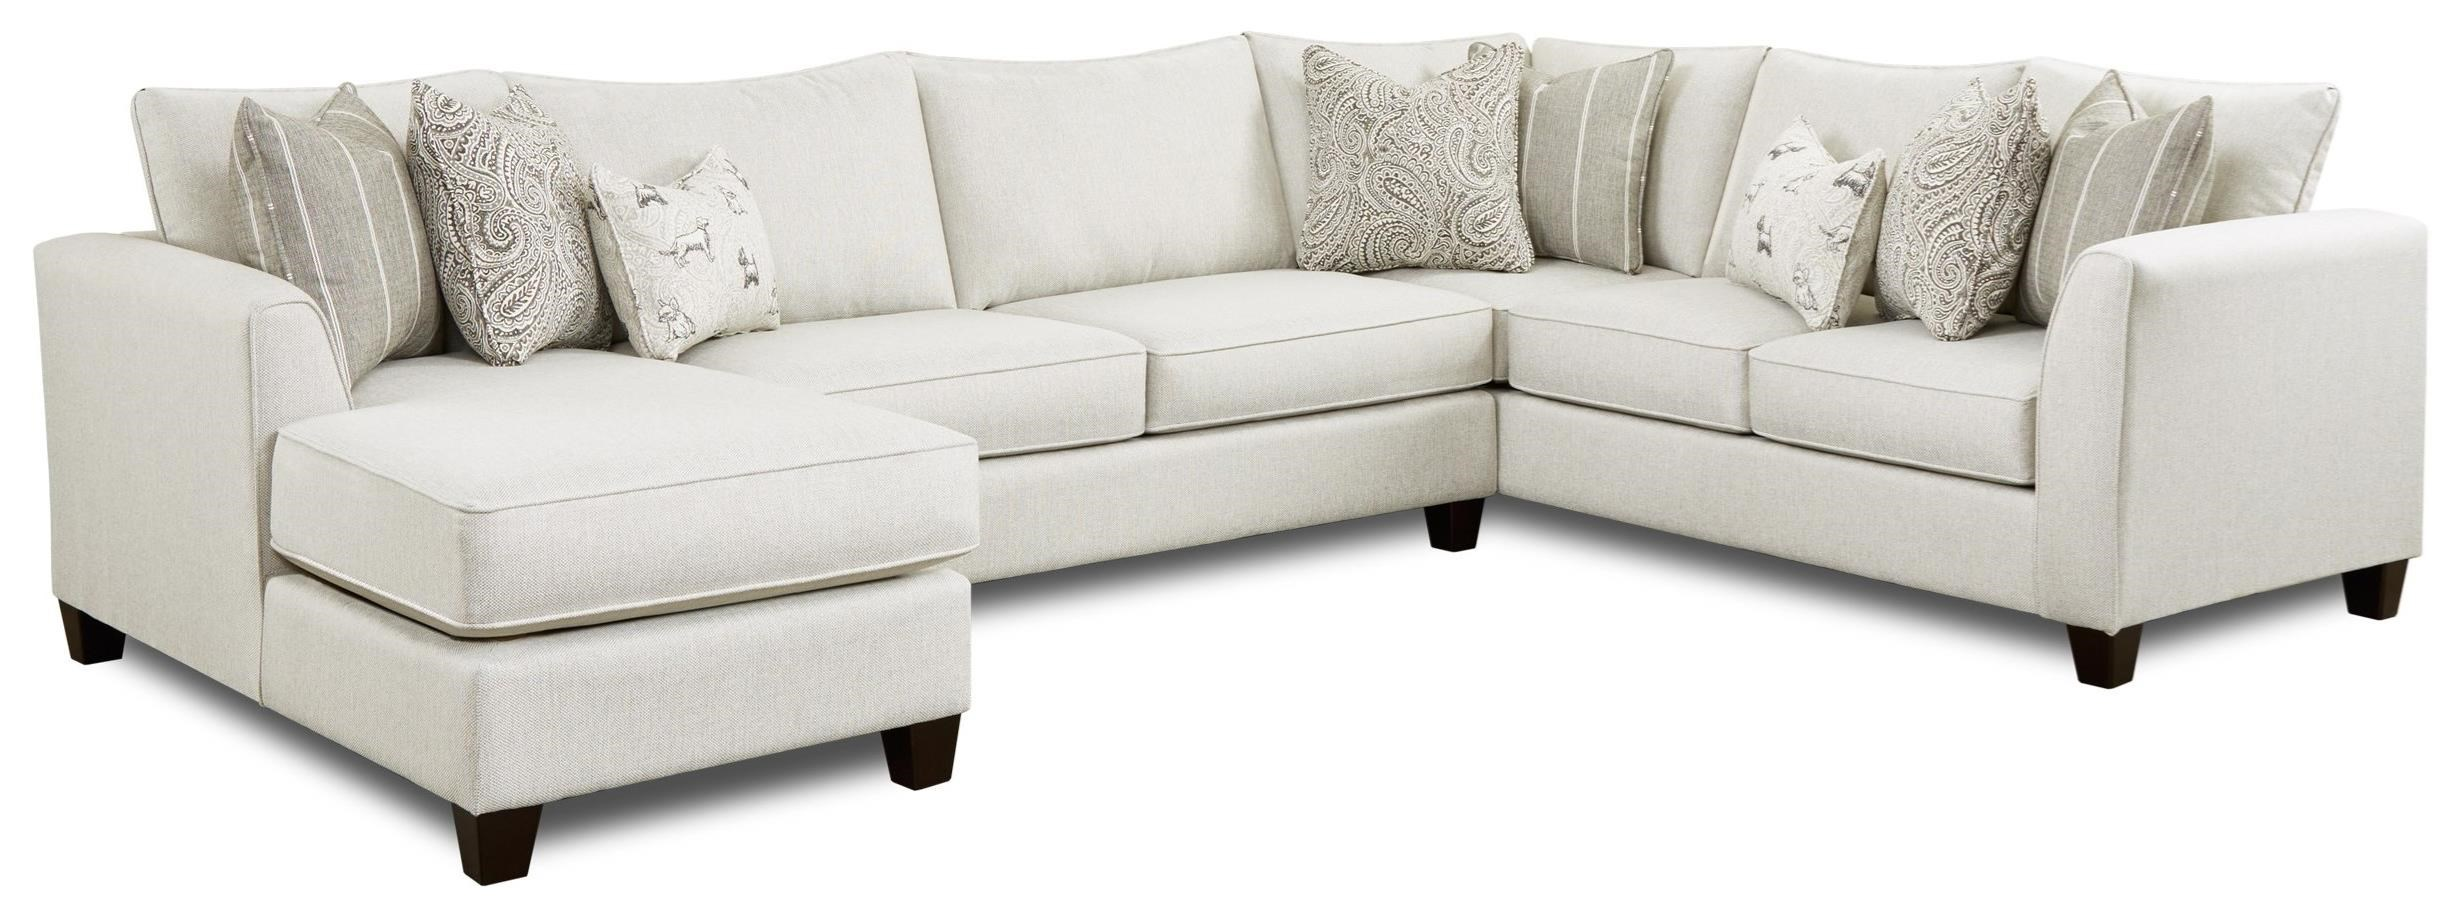 28 3-Piece Sectional with Chaise by Fusion Furniture at Furniture Superstore - Rochester, MN